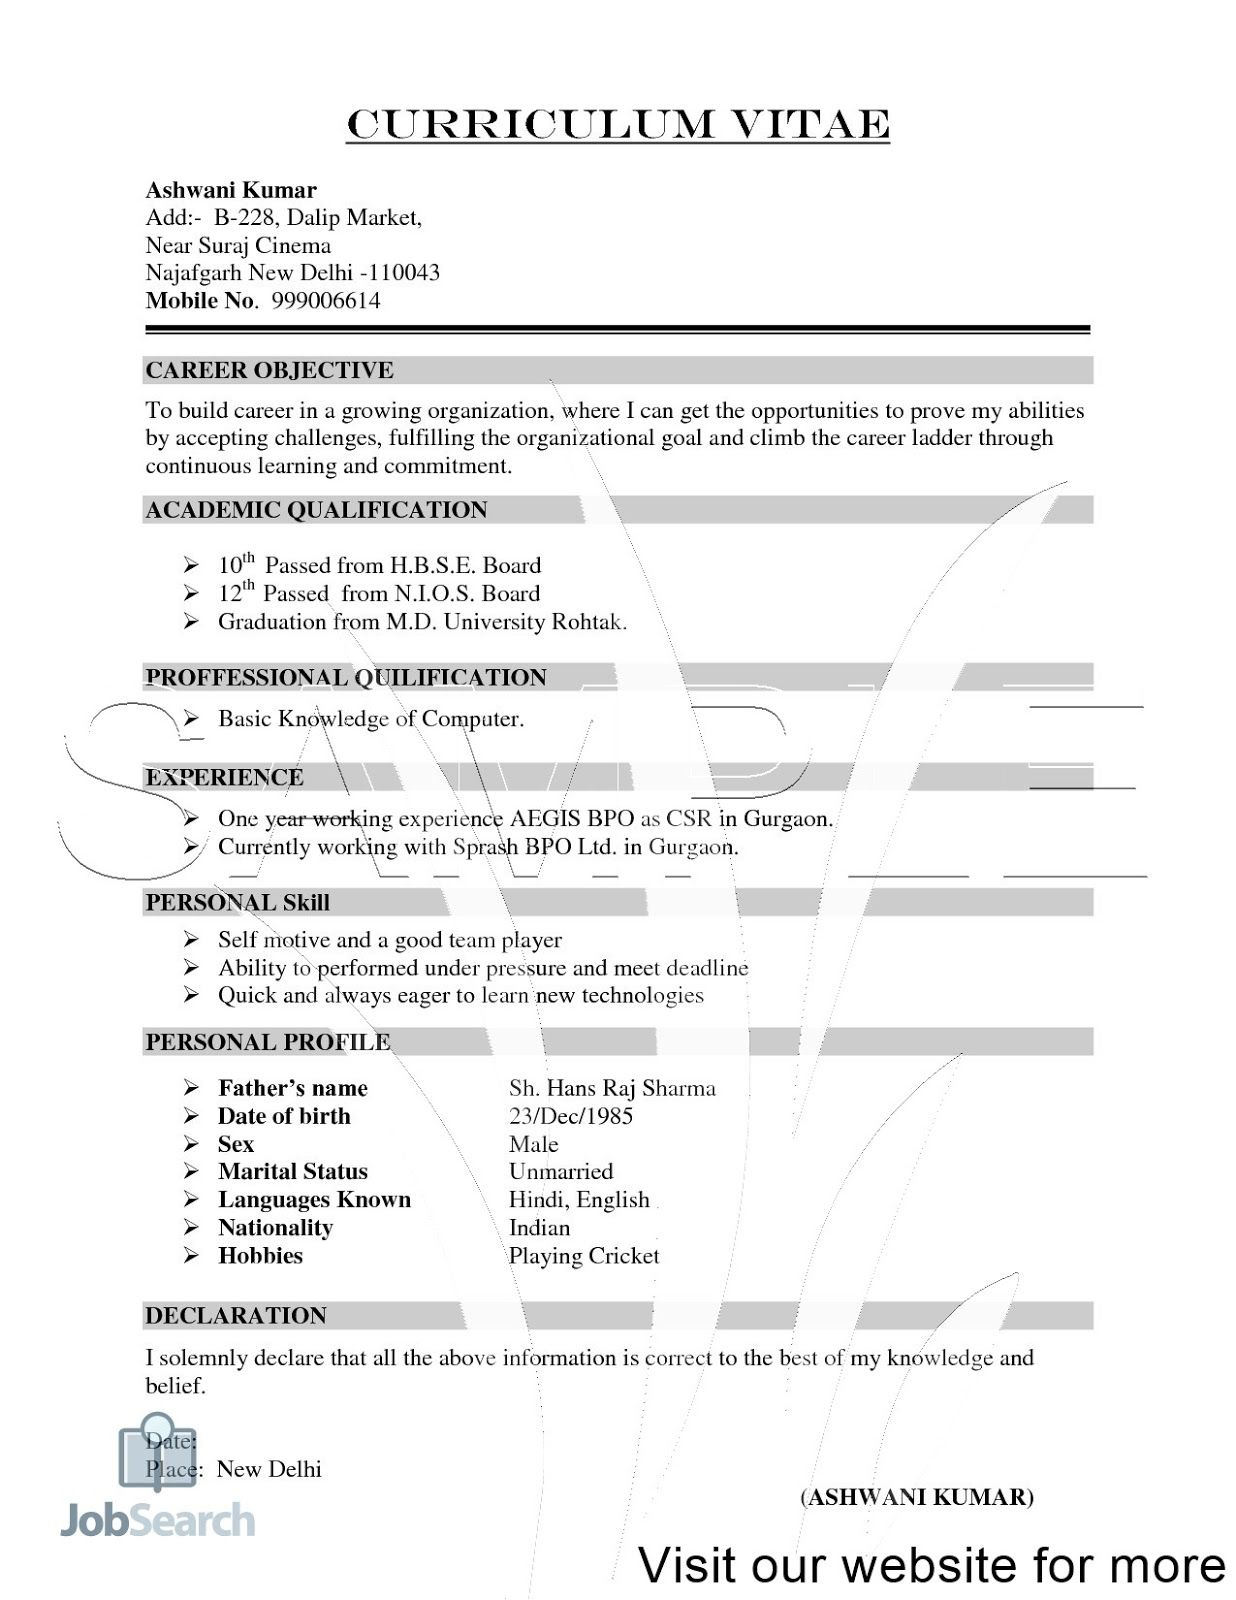 resume format for freshers, resume format free download